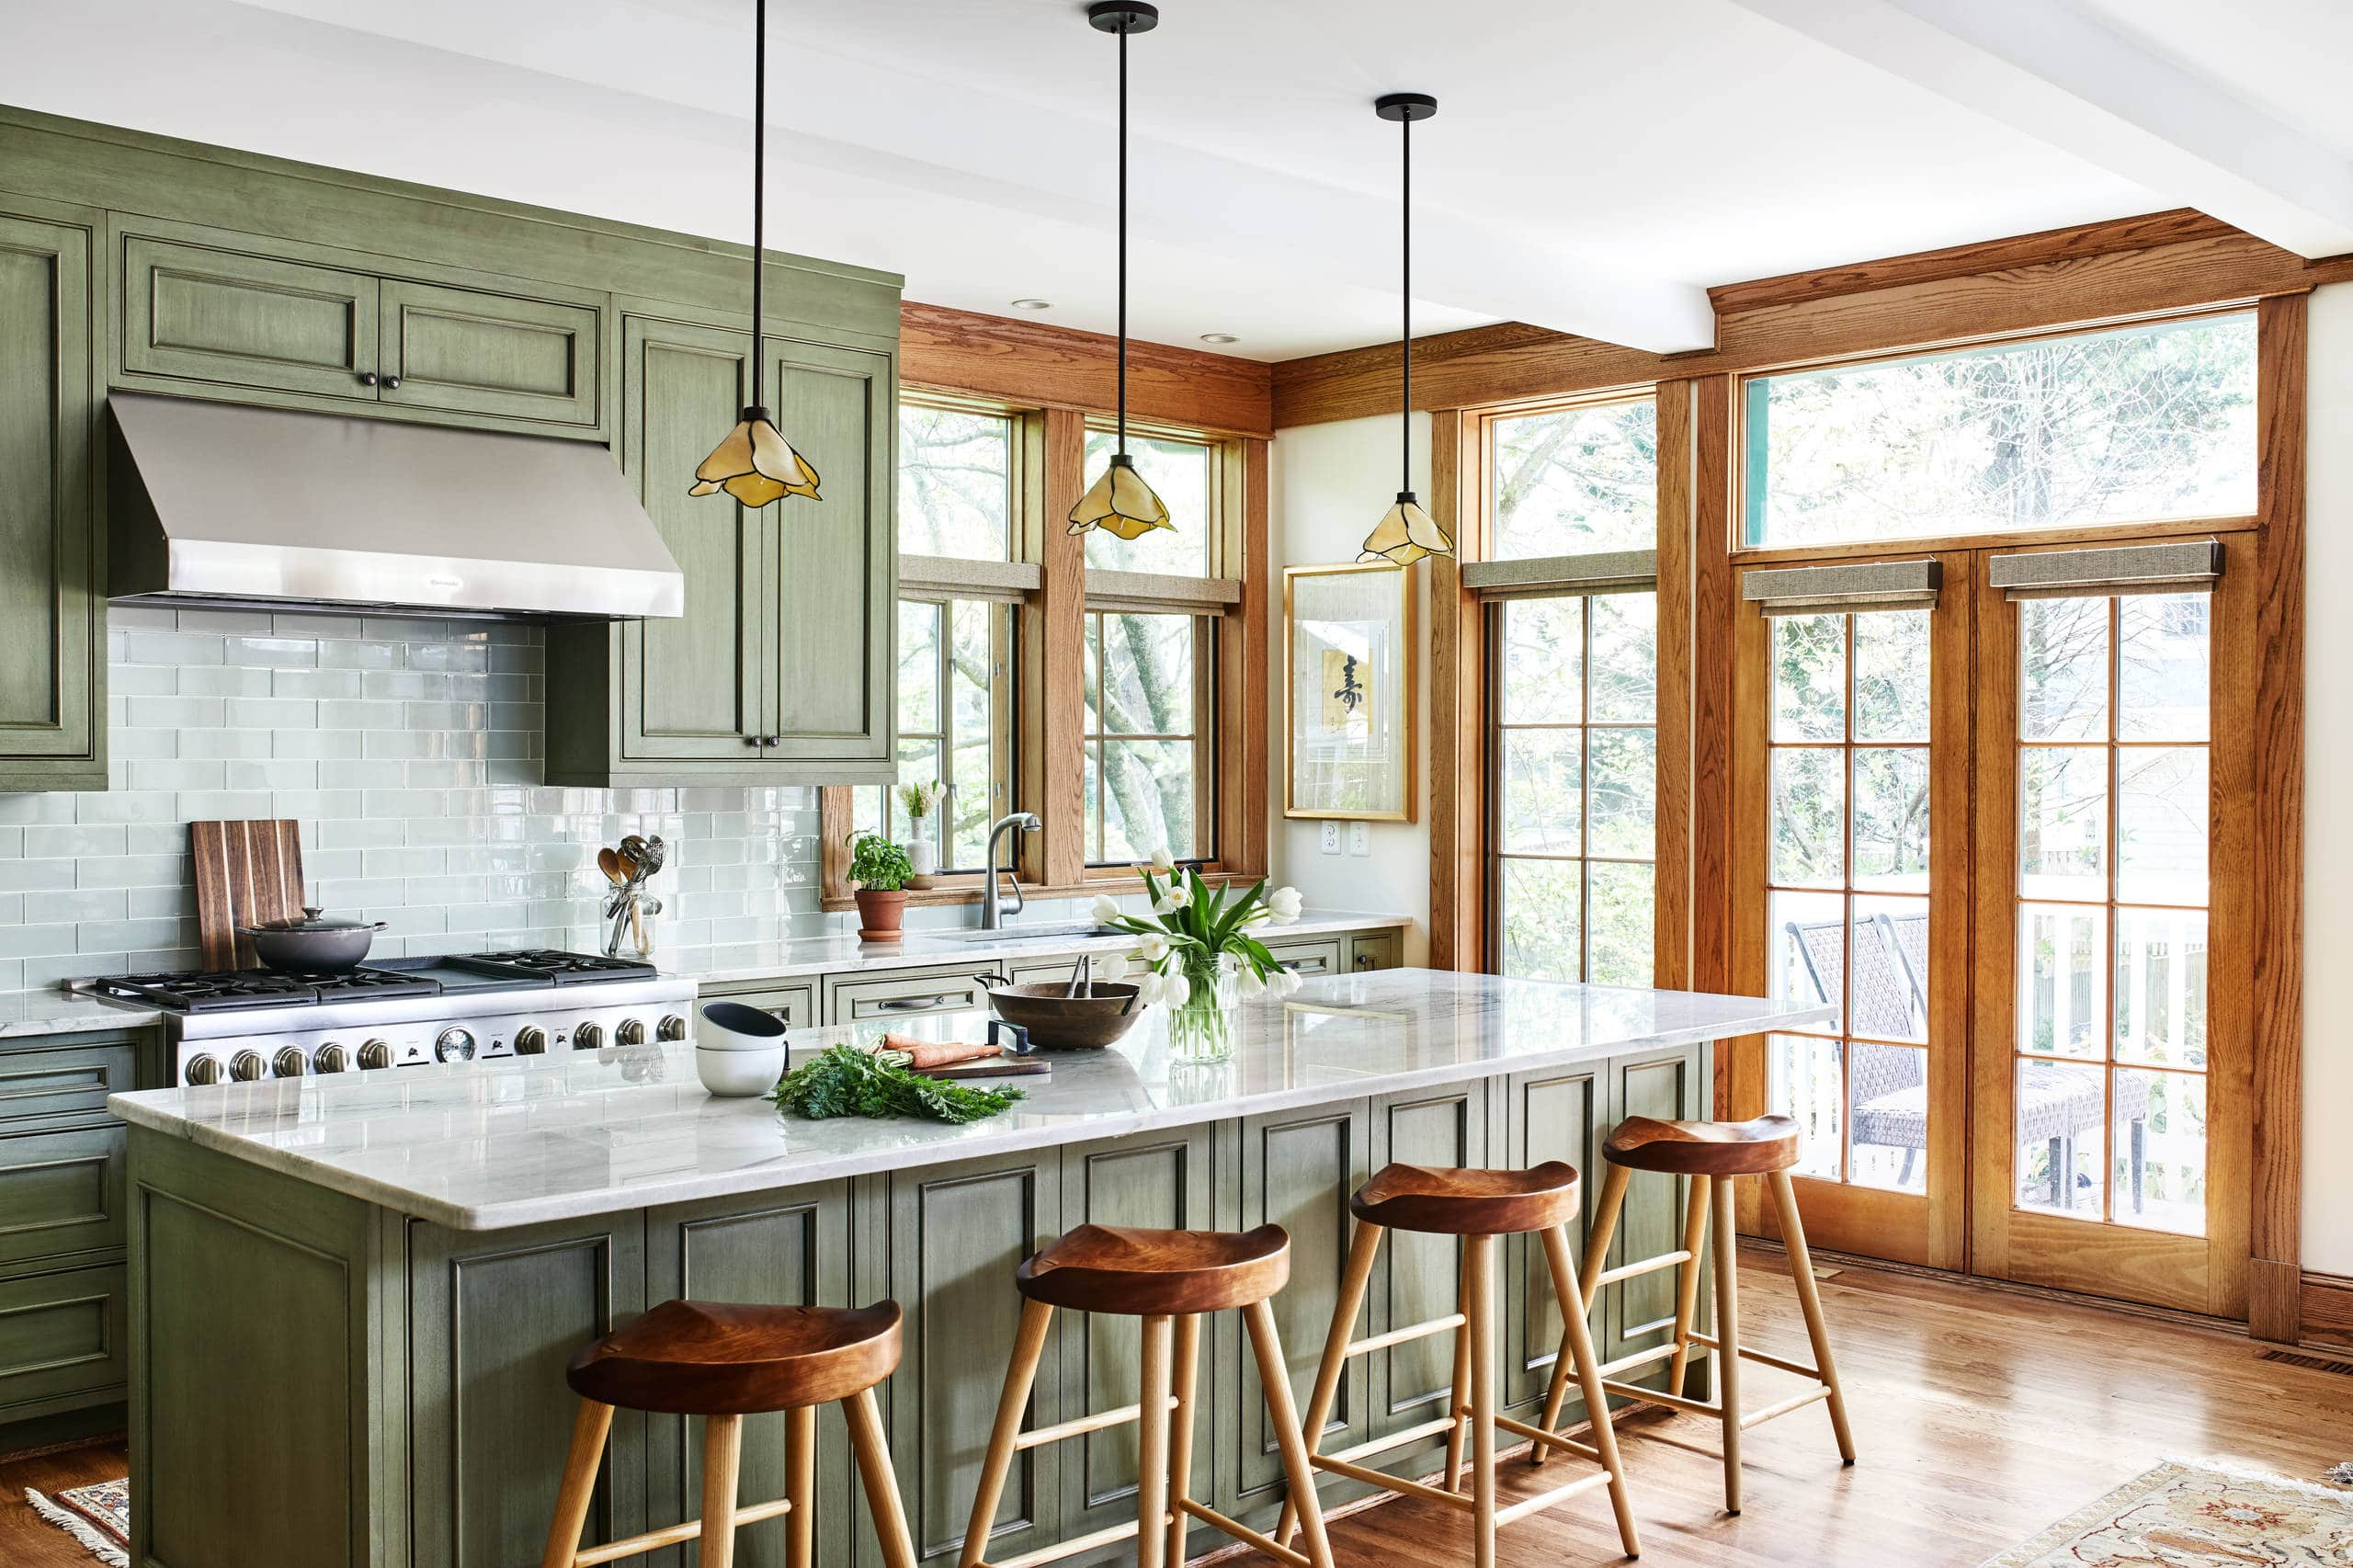 Organic And Functional The Craftsman Style Kitchen Best Online Cabinets